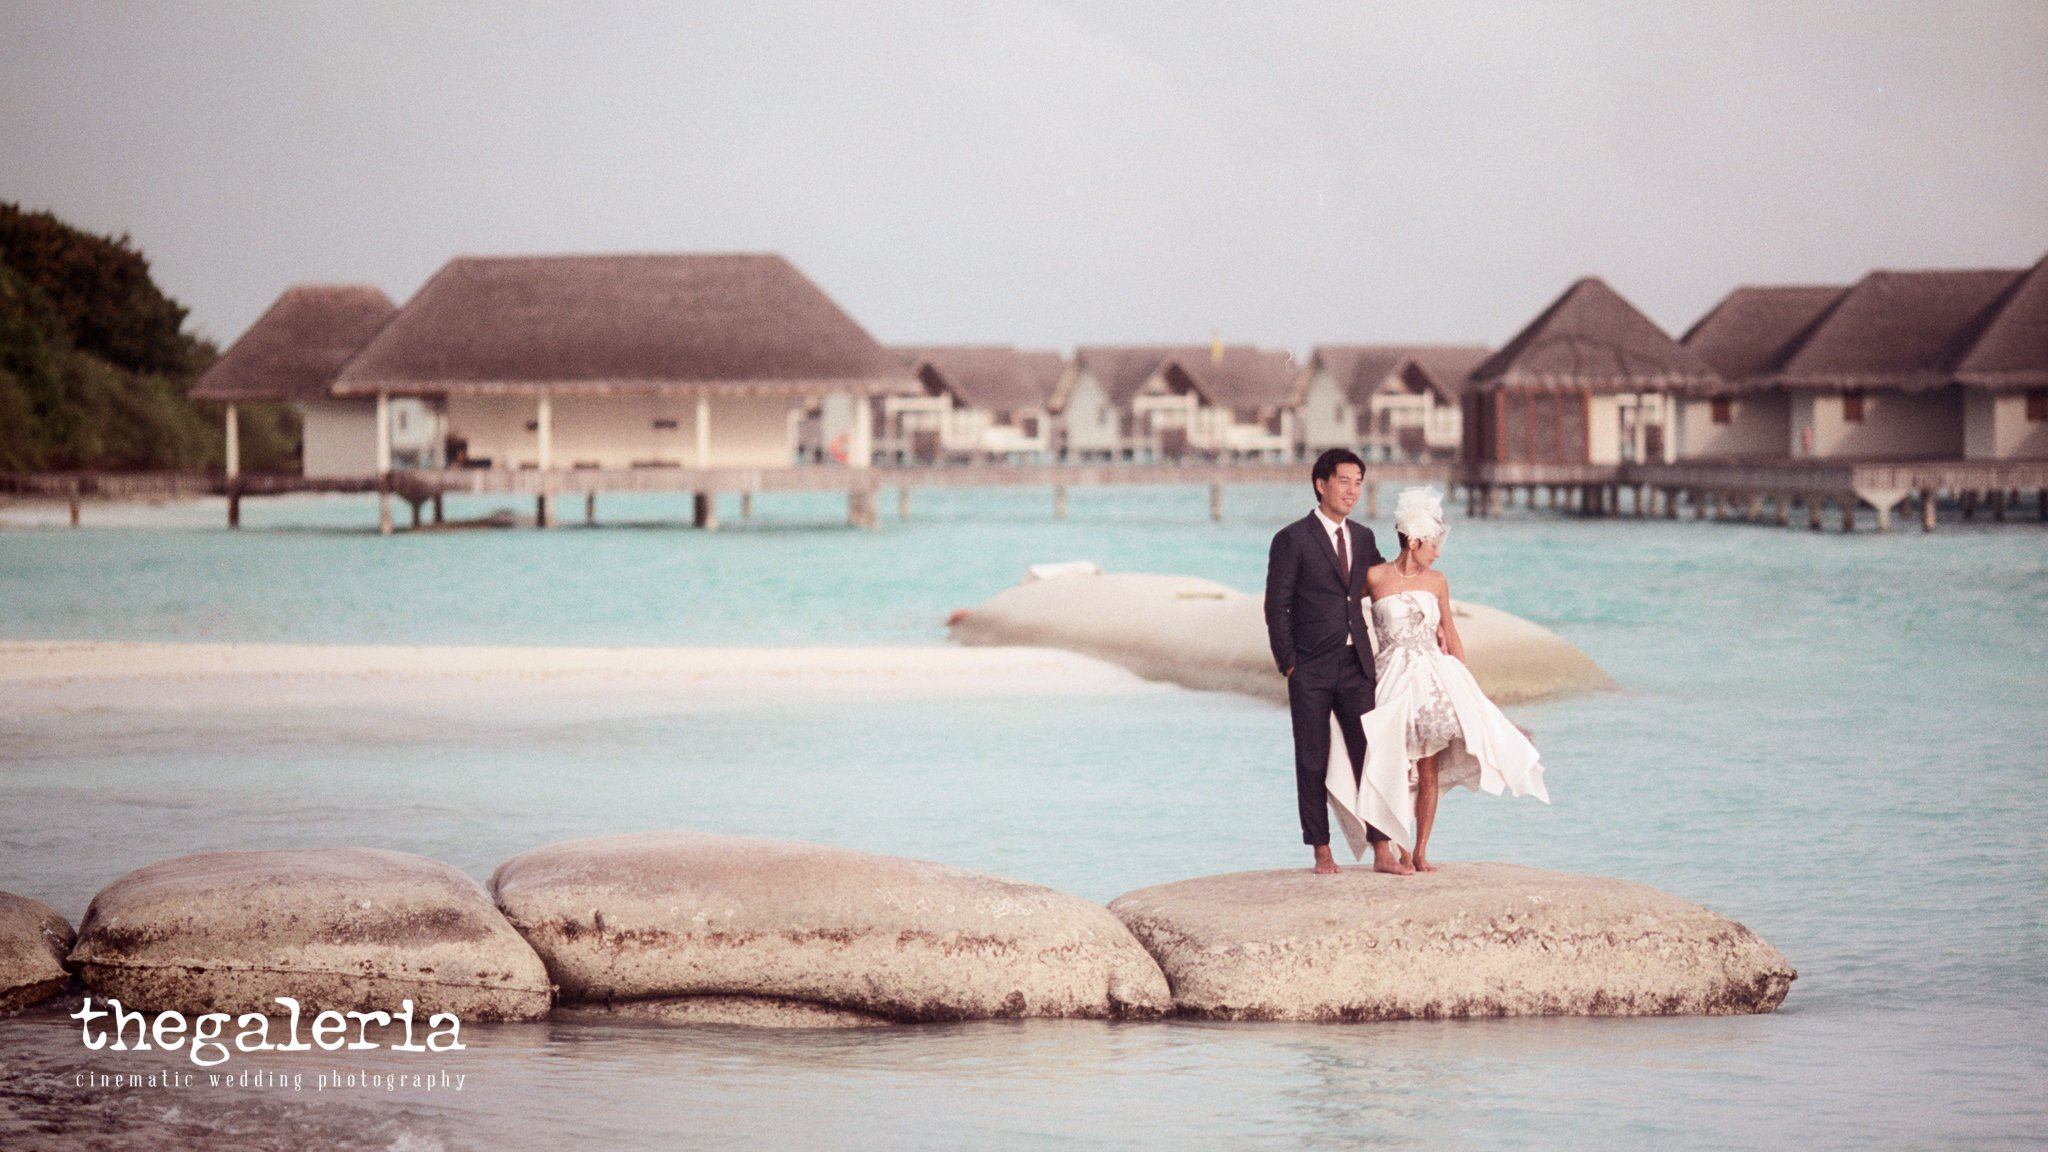 Maldives Pre-Wedding & Destination Weddings by Film Wedding Photographer Brian Ho from thegaleria. Film: CineStill 50D